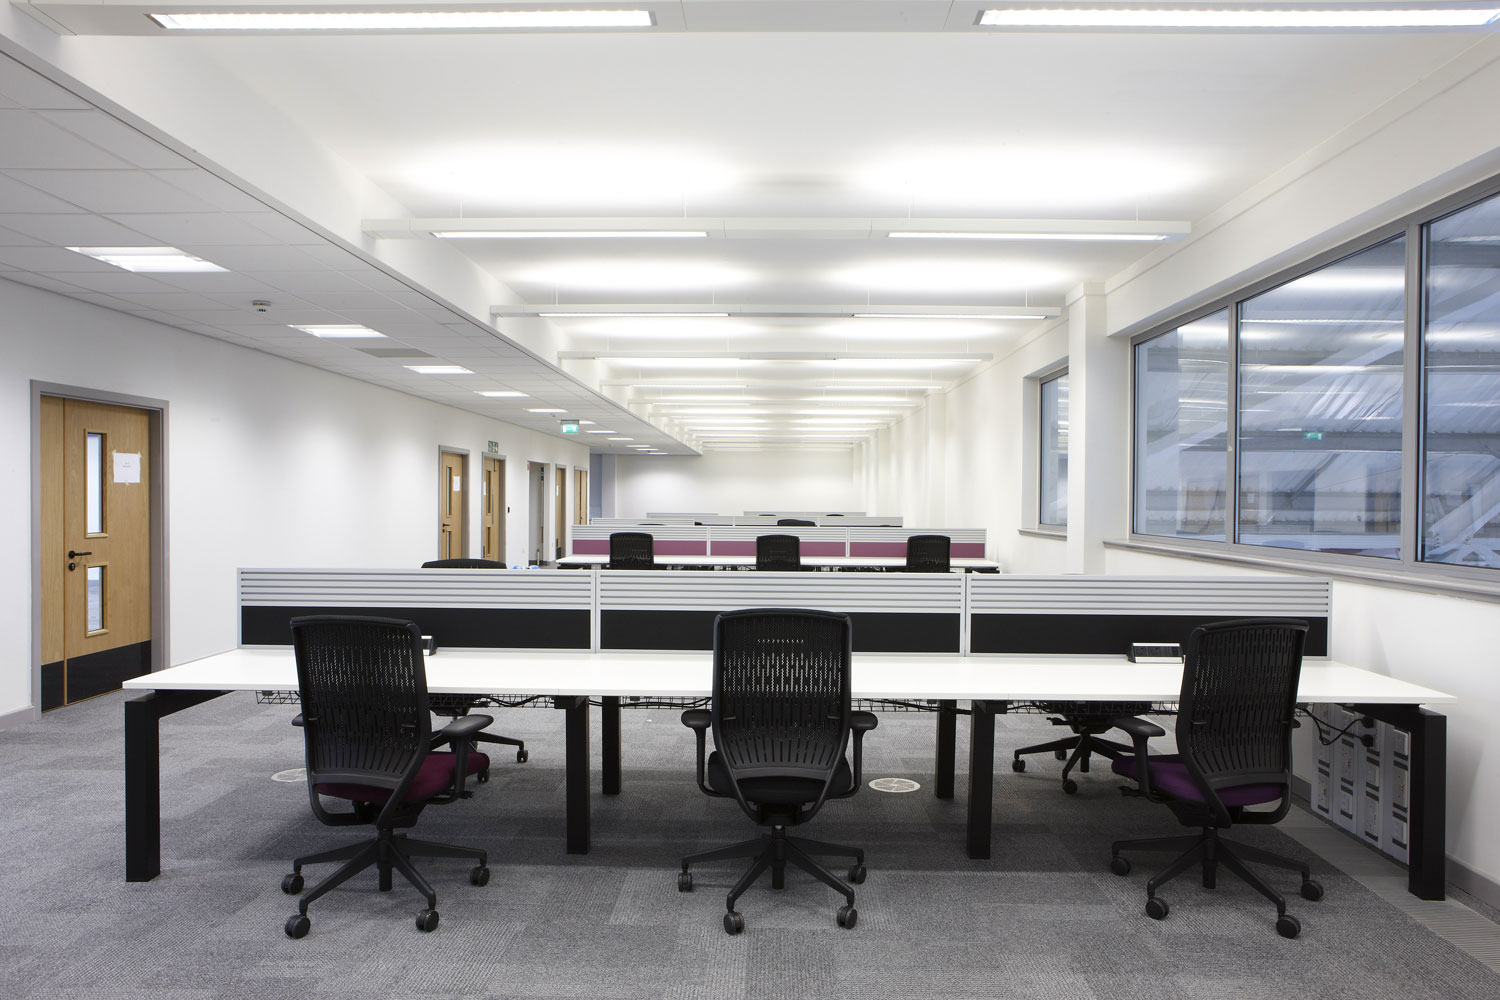 Sandwell College Classroom Photography, West Bromwich, Birmingham | Interior Exterior Photography | Building Photography